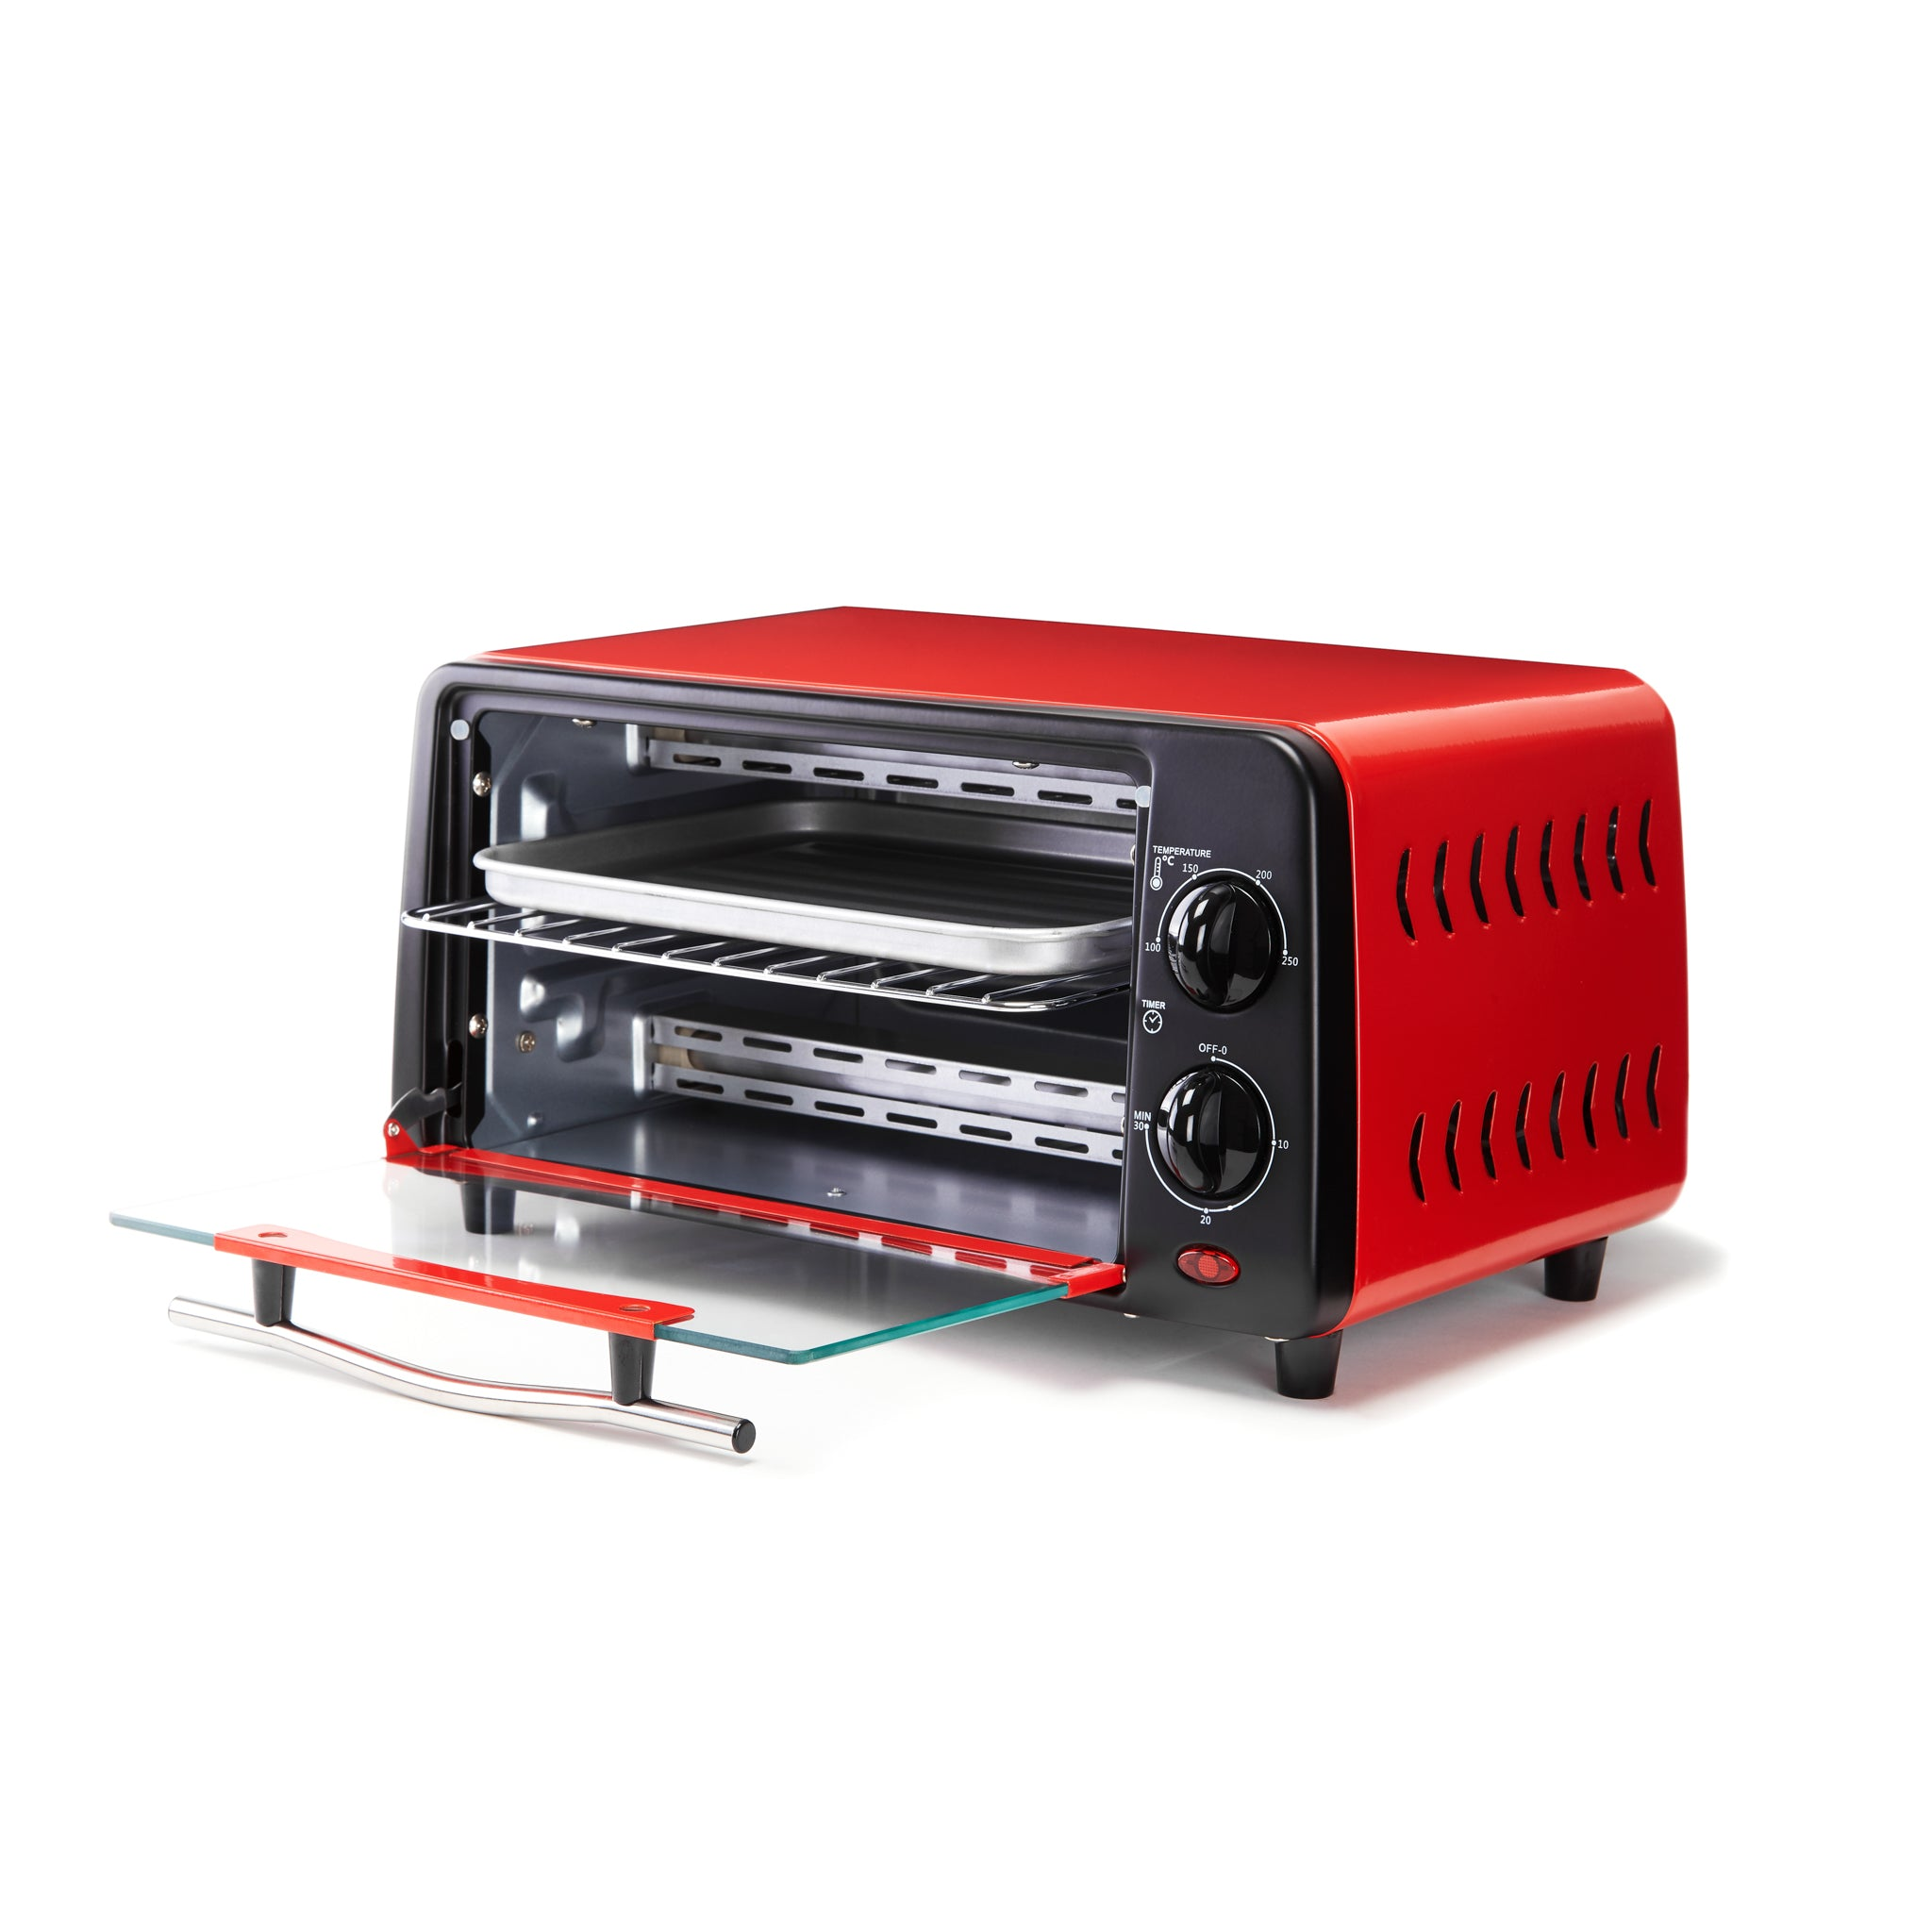 10L Mini Oven in Passion Red and Rich Black